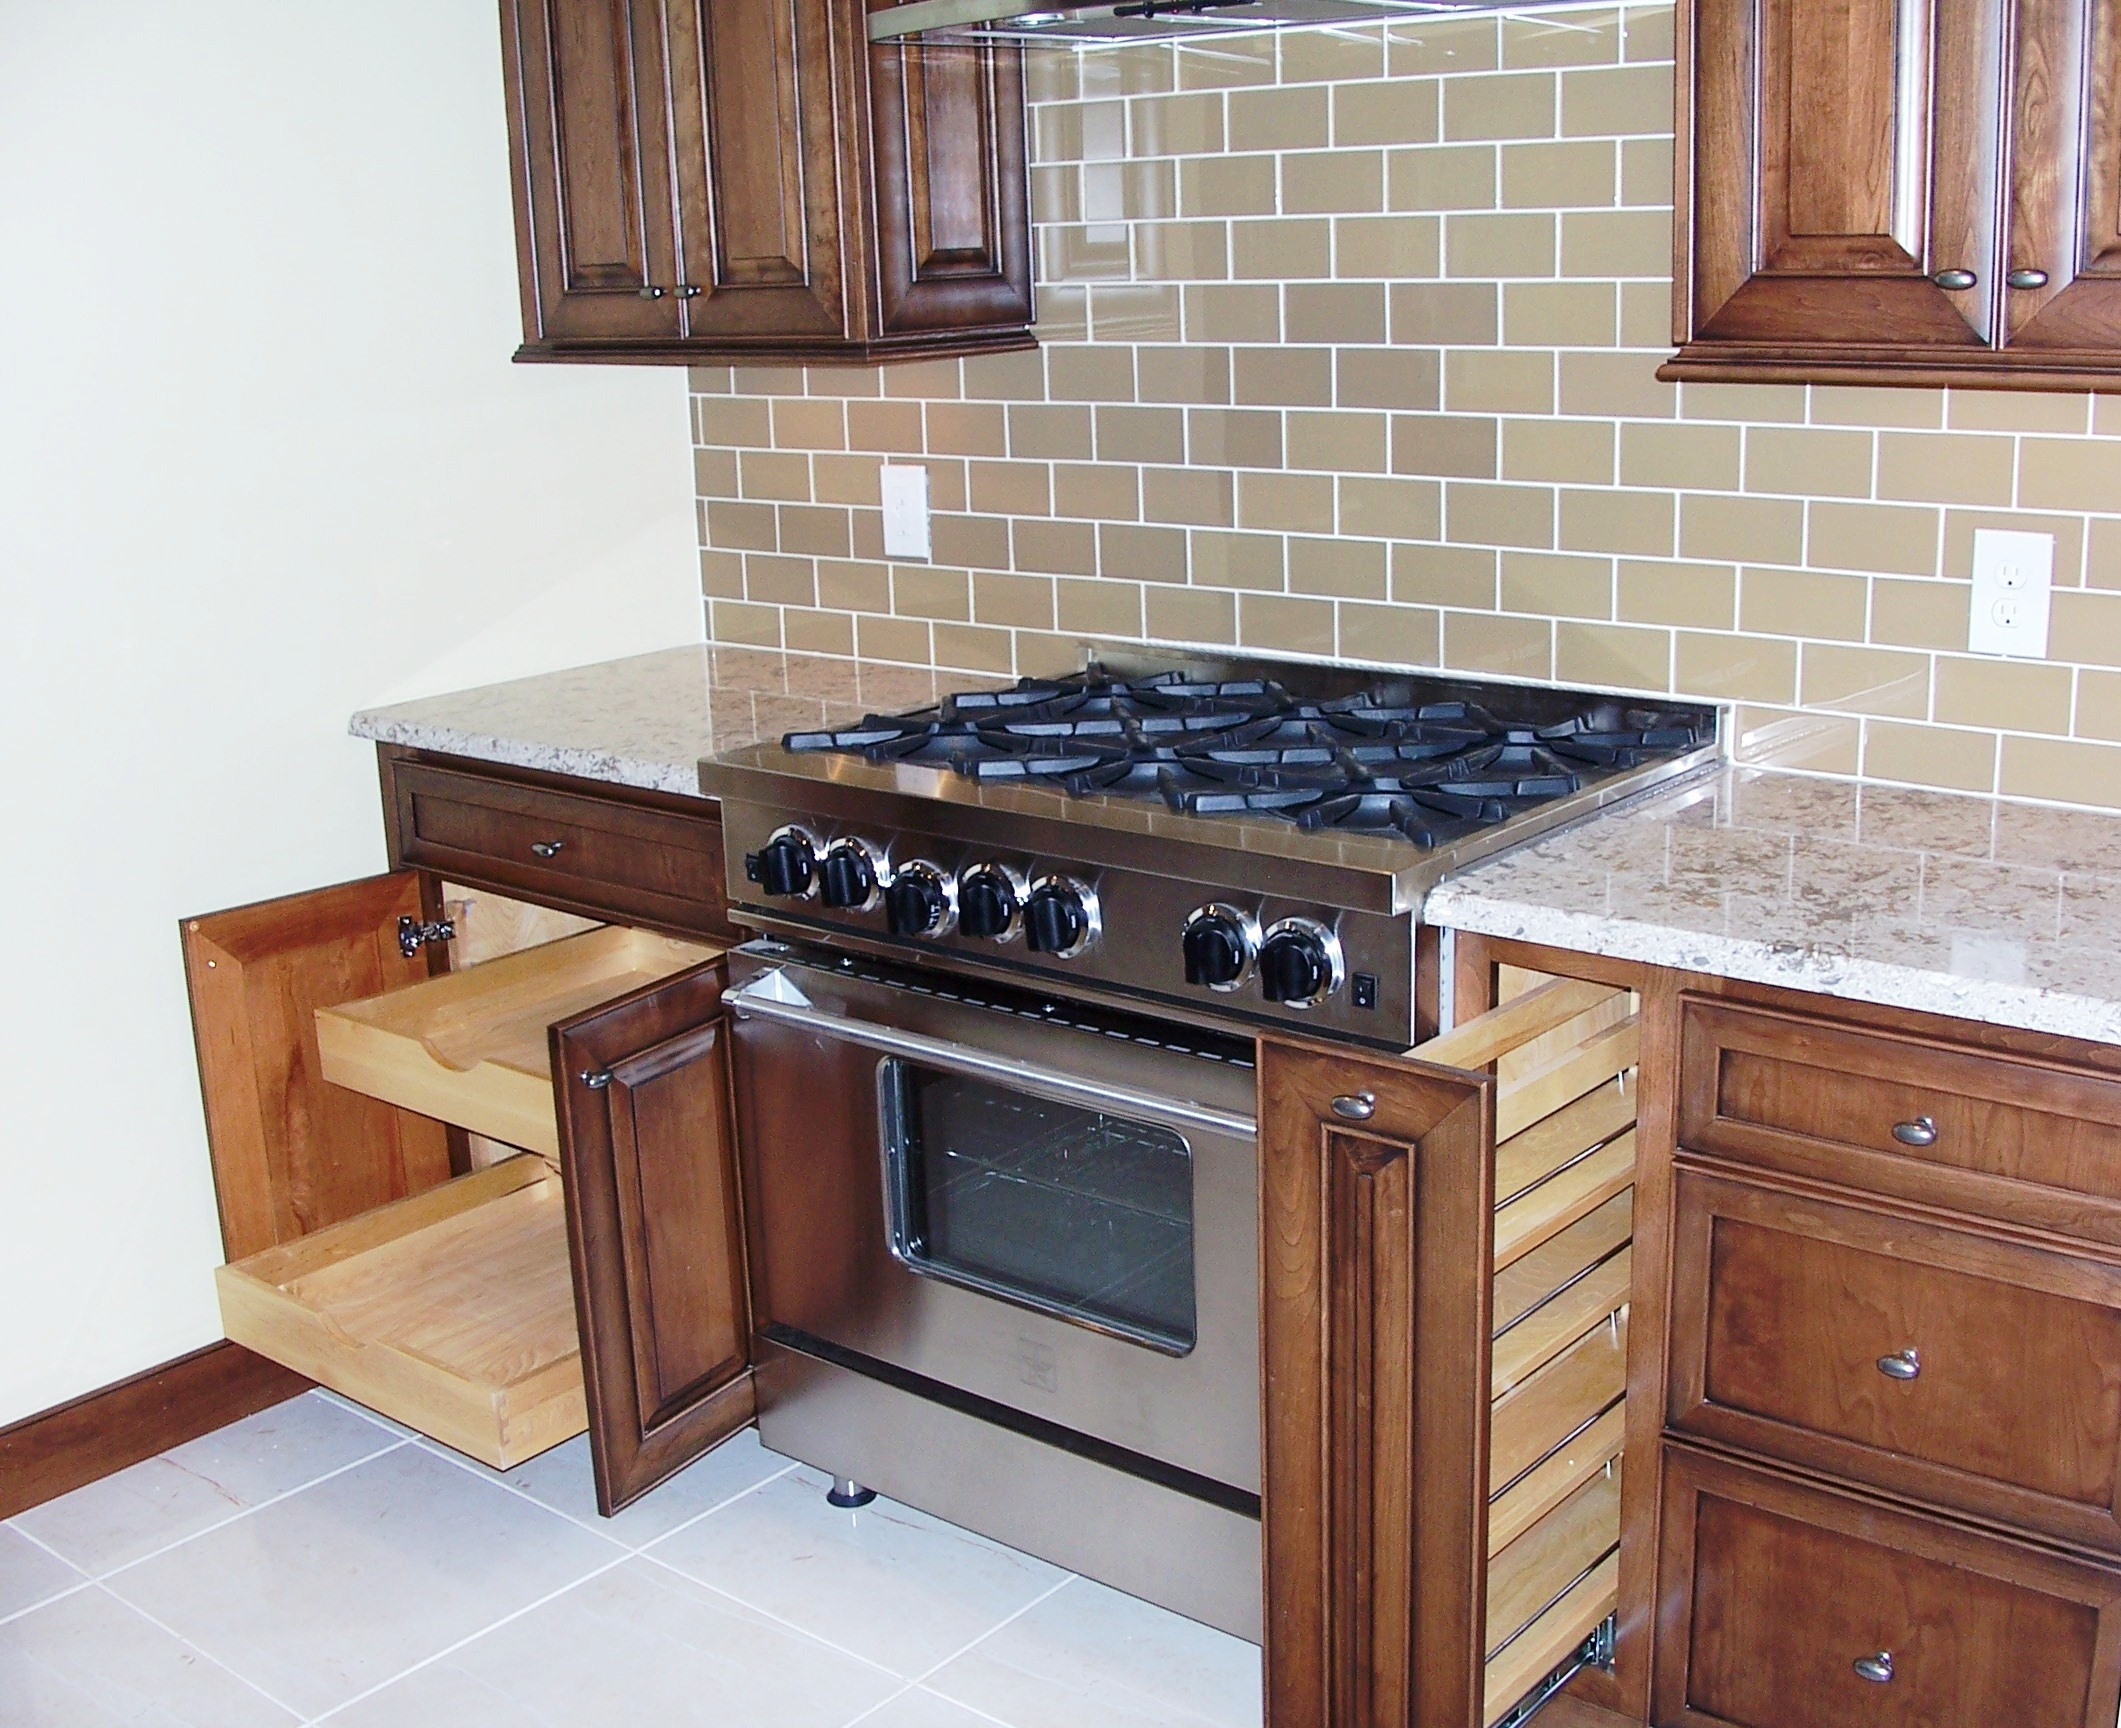 range stove is s difference reviewed oven what anyway com ovens this kitchen the a features whats